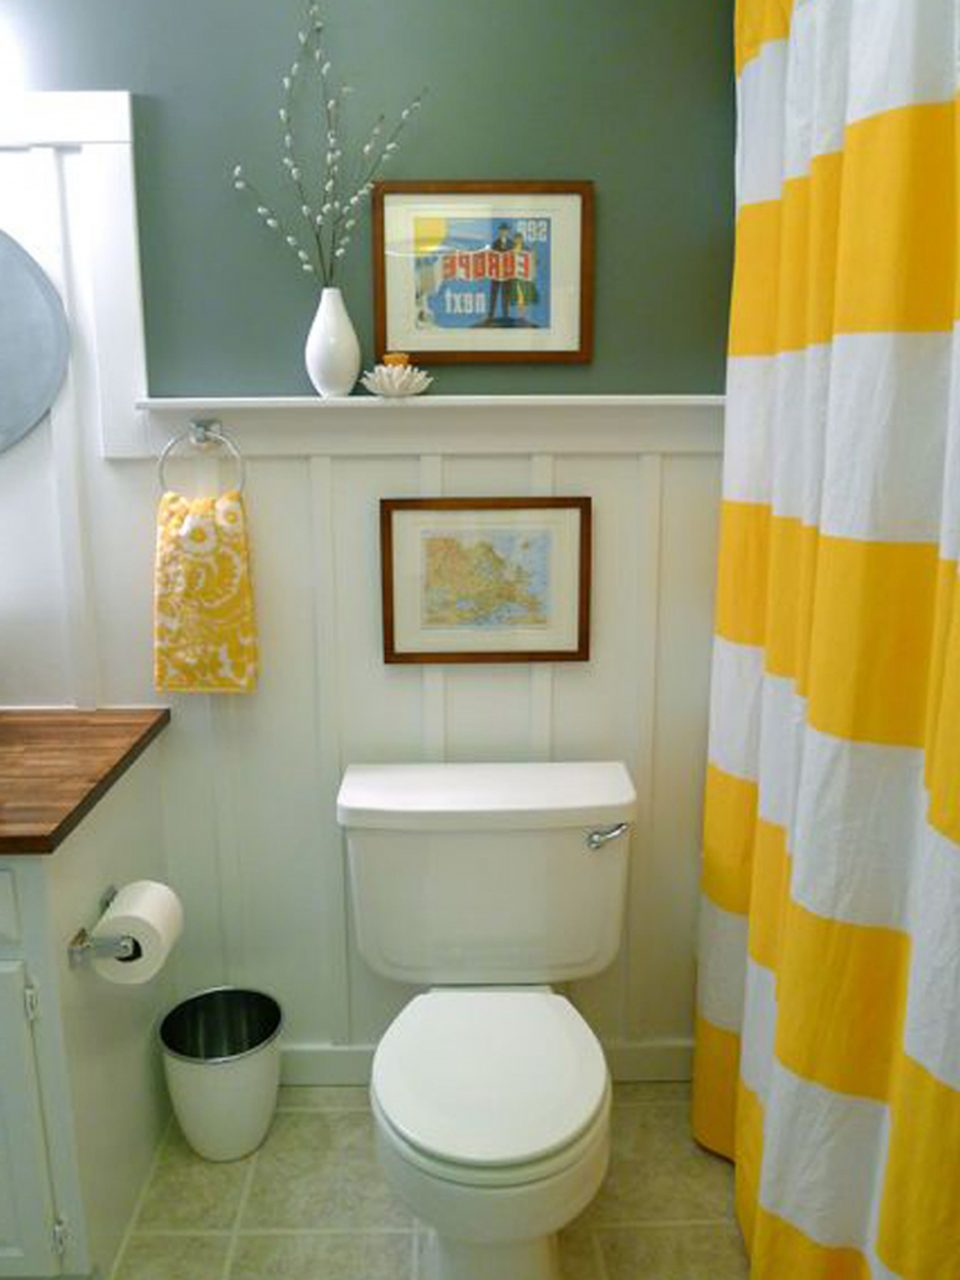 Apartment Bathroom Ideas Modest How To Decorate A Small Classic With